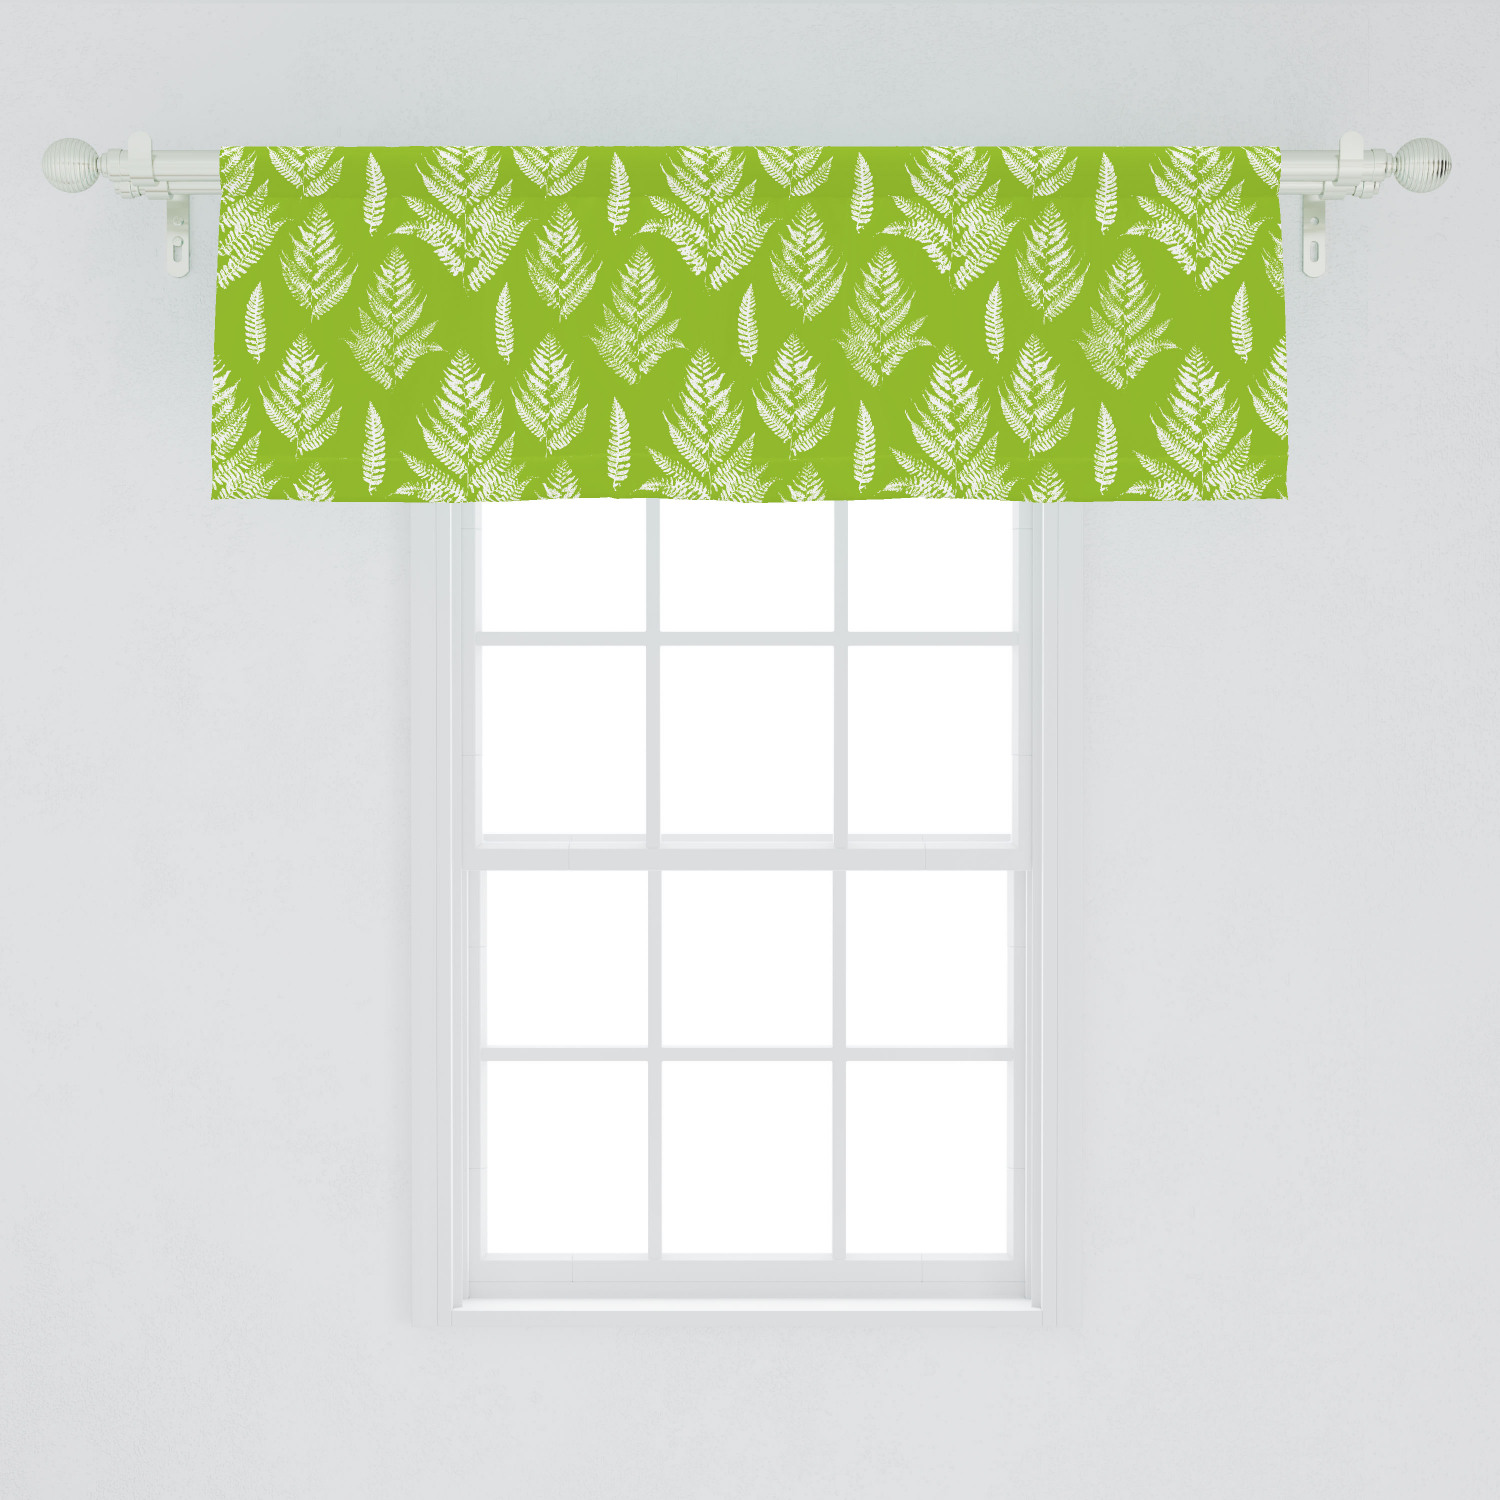 Leaves Window Valance Simplistic Layout Of Fern Leaves With Paint Stains Grunge Monochrome Design Curtain Valance For Kitchen Bedroom Decor With Rod Pocket By Ambesonne Walmart Com Walmart Com